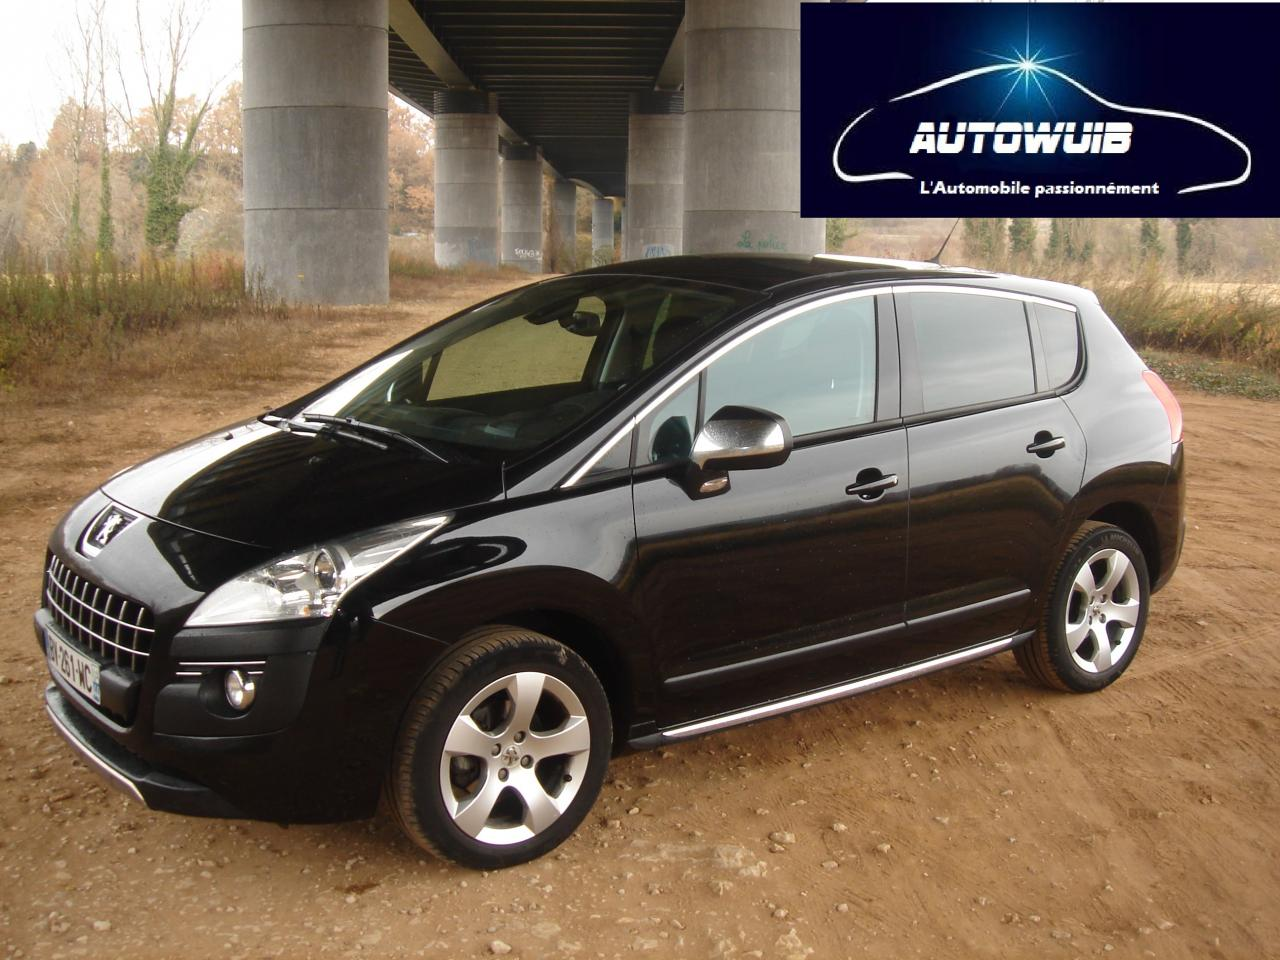 peugeot 3008 1 6 hdi 112 ch allure gps toit panoramique. Black Bedroom Furniture Sets. Home Design Ideas